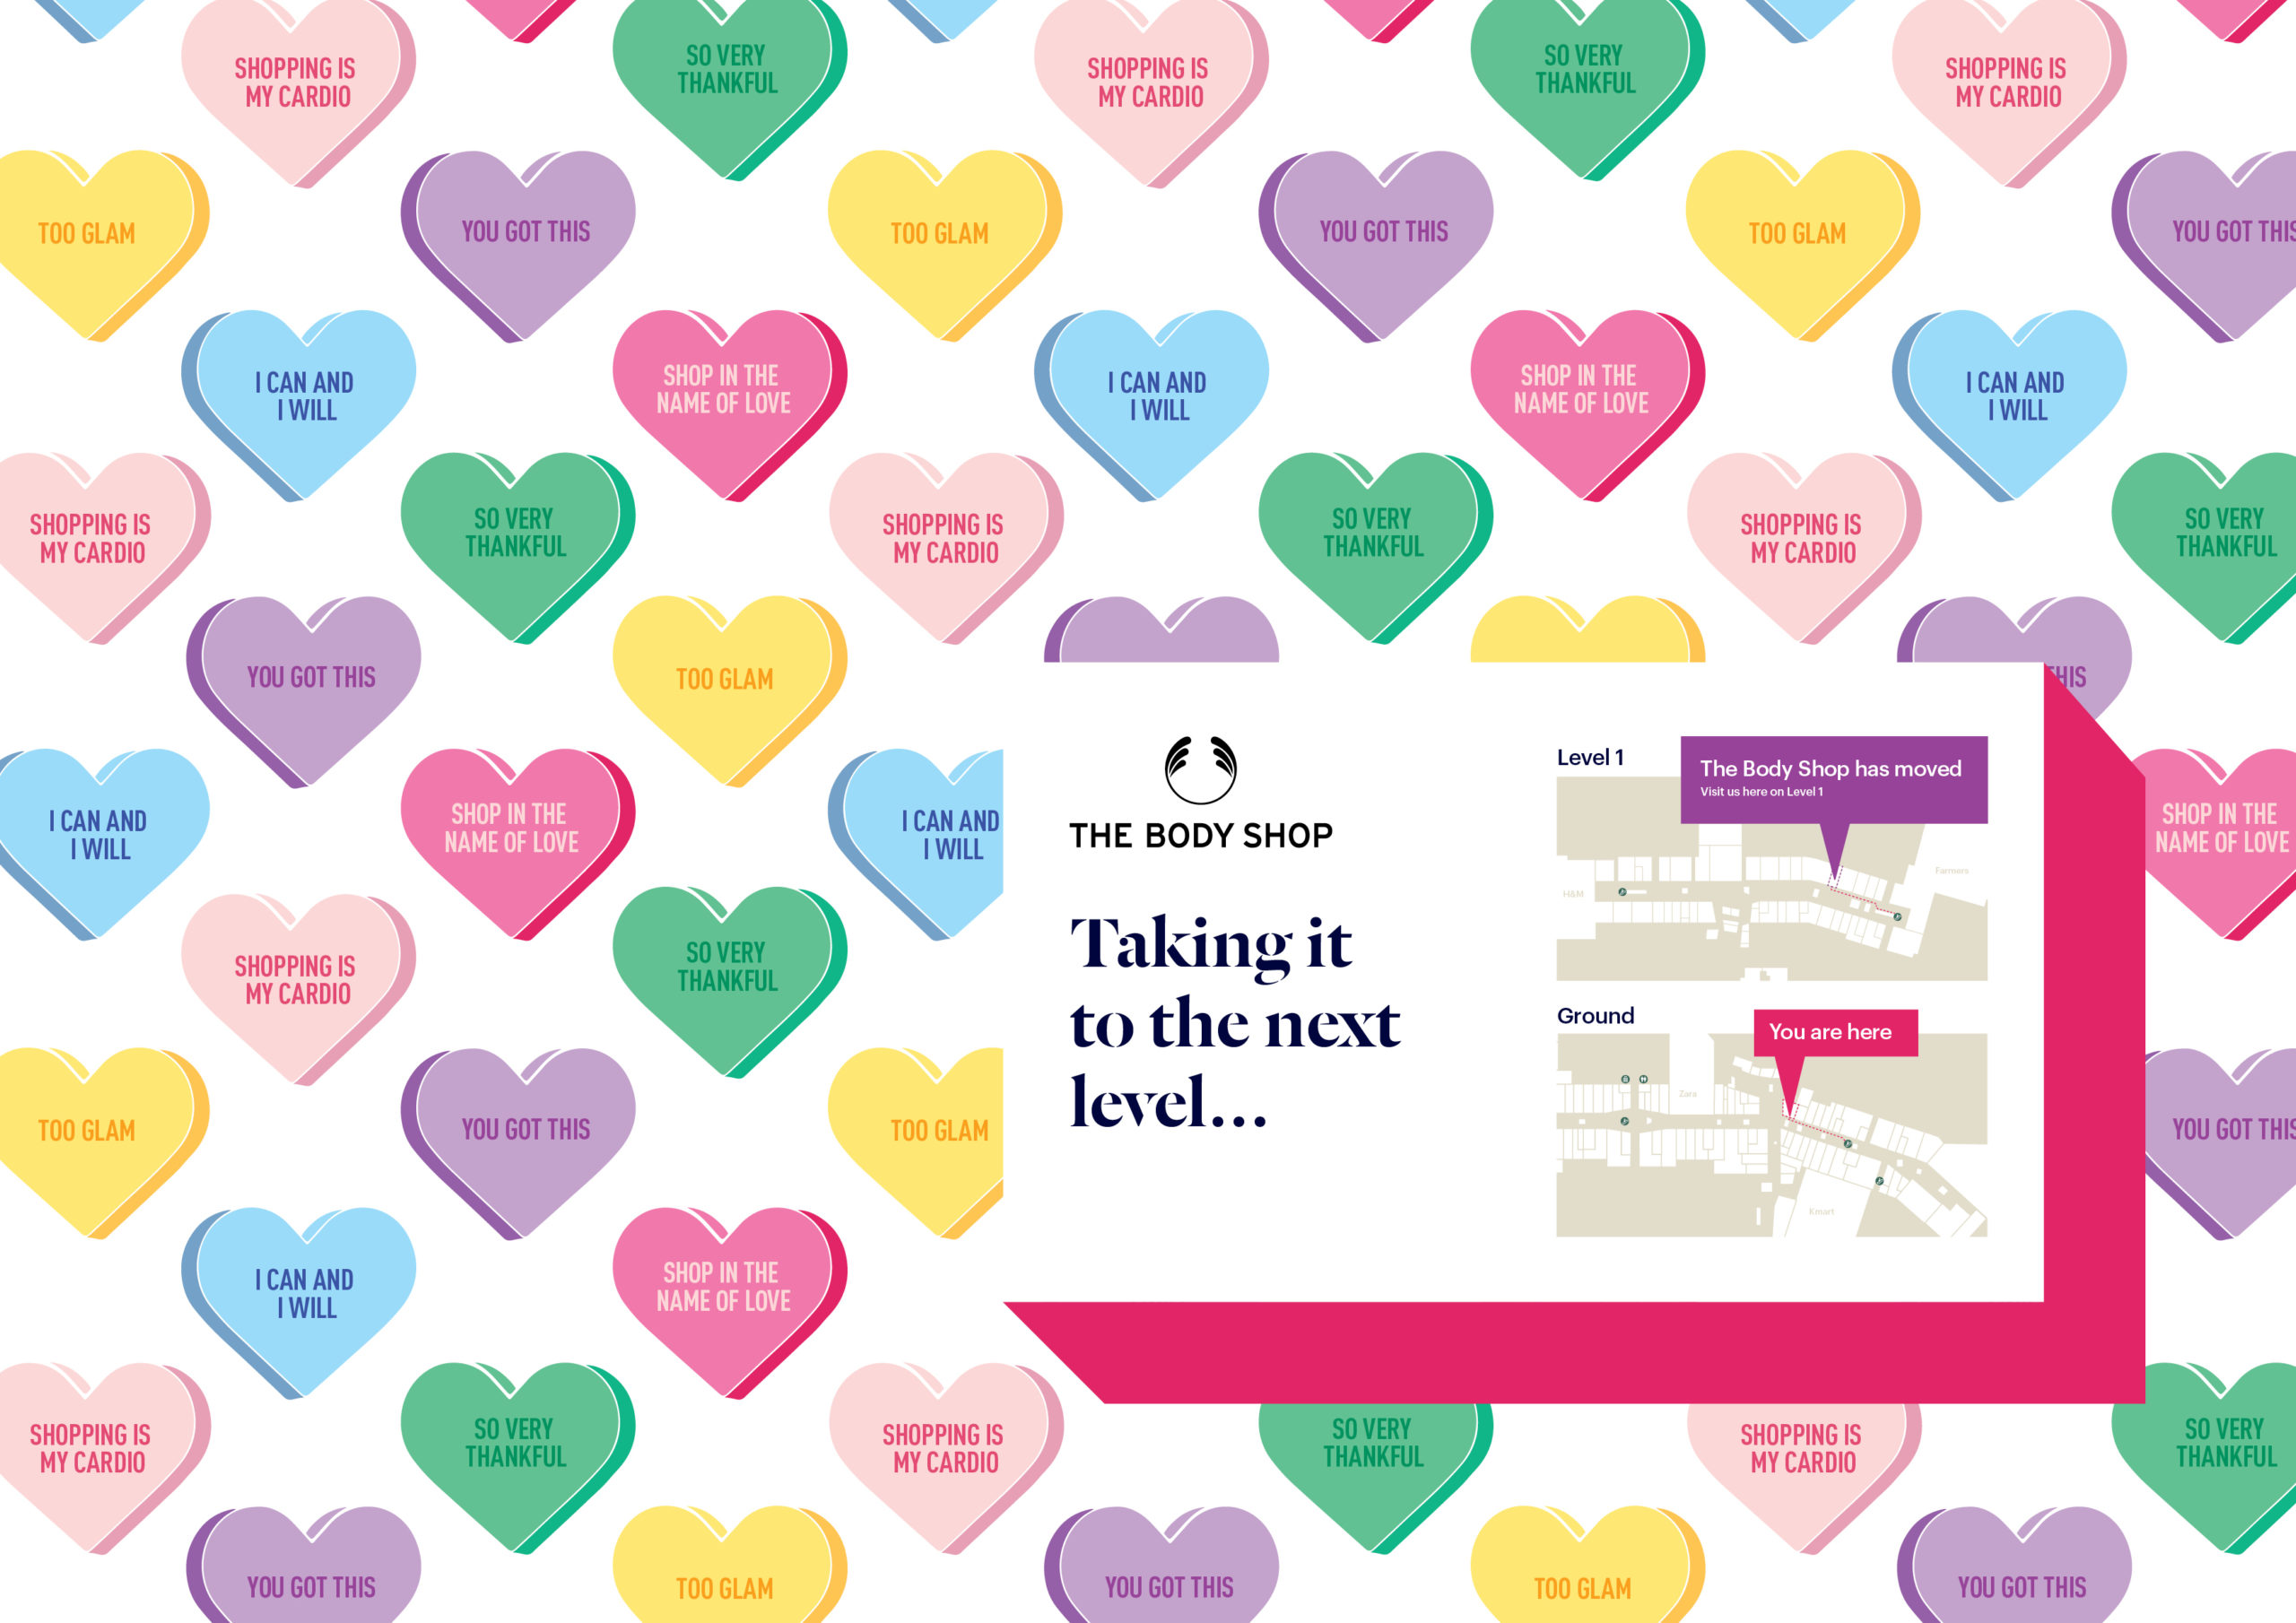 Sherbet coloured candy heart illustrations and directional map wall art